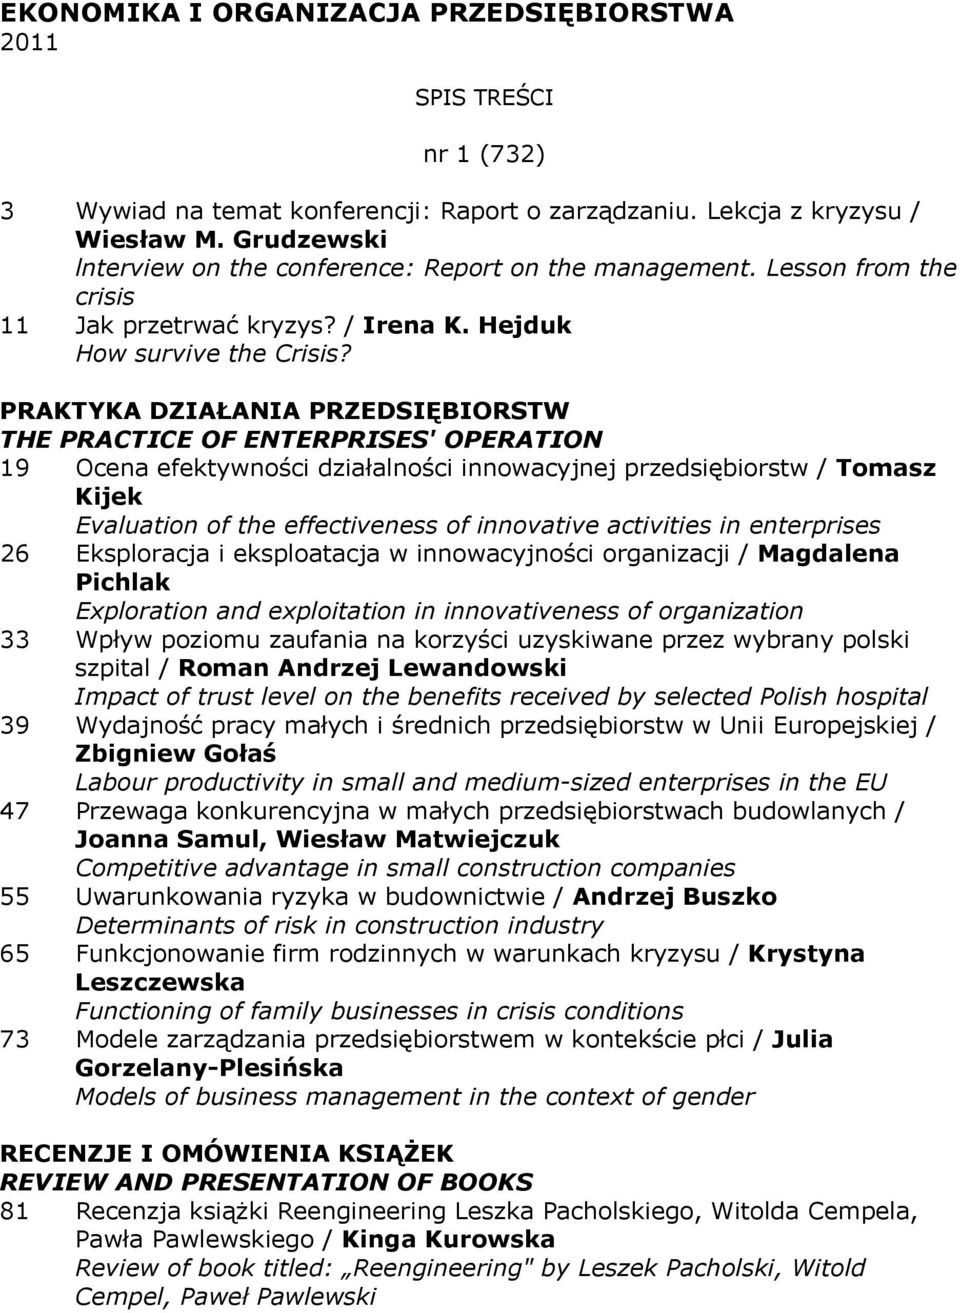 THE PRACTICE OF ENTERPRISES' OPERATION 19 Ocena efektywności działalności innowacyjnej przedsiębiorstw / Tomasz Kijek Evaluation of the effectiveness of innovative activities in enterprises 26